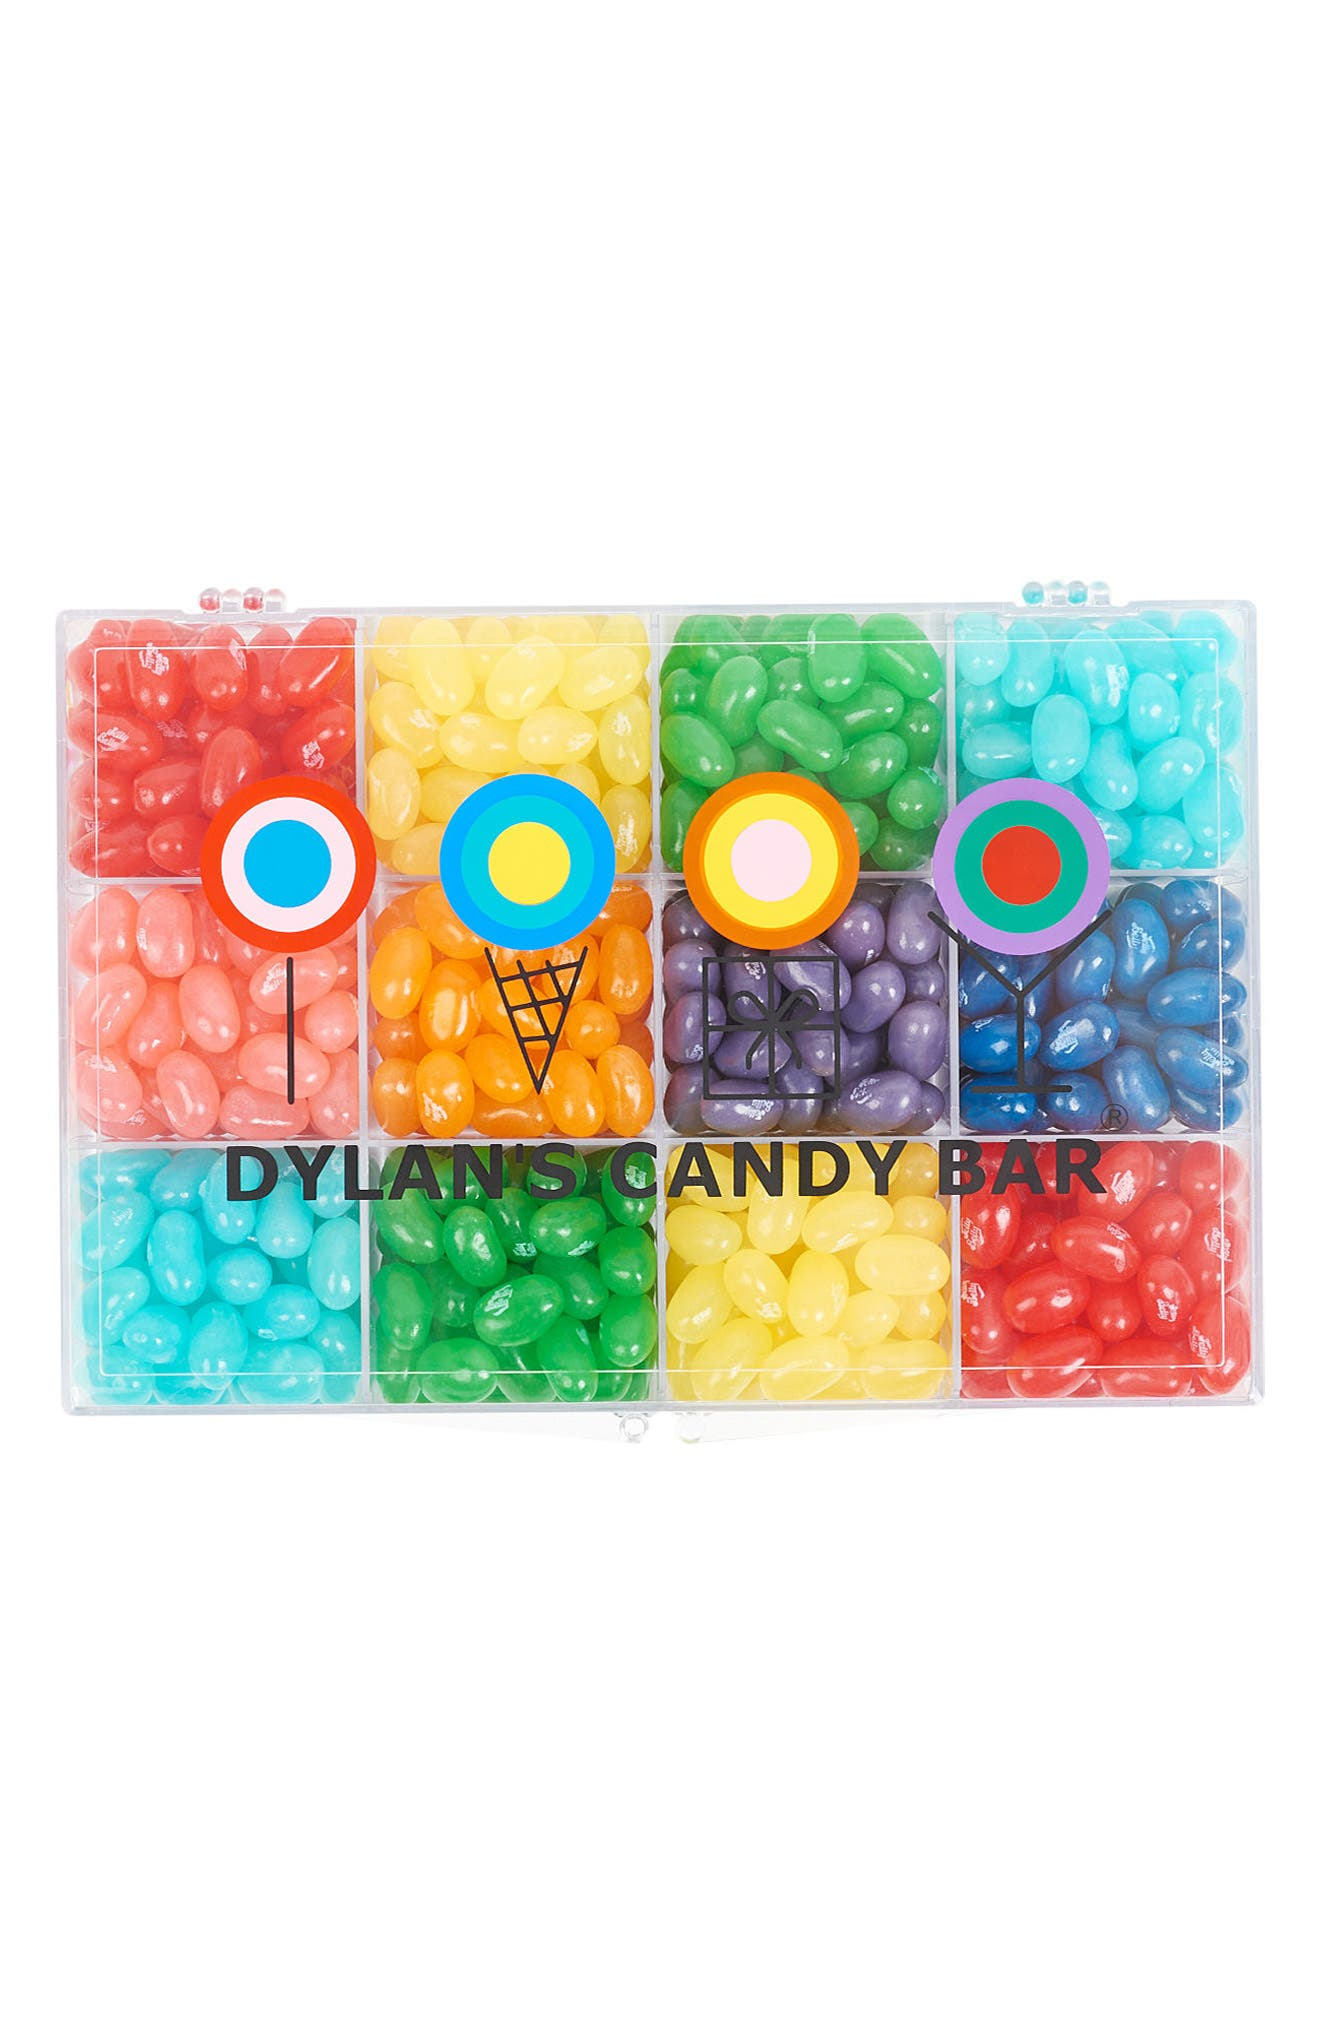 Dylan's Candy Bar Signature Jelly Belly Tackle Box